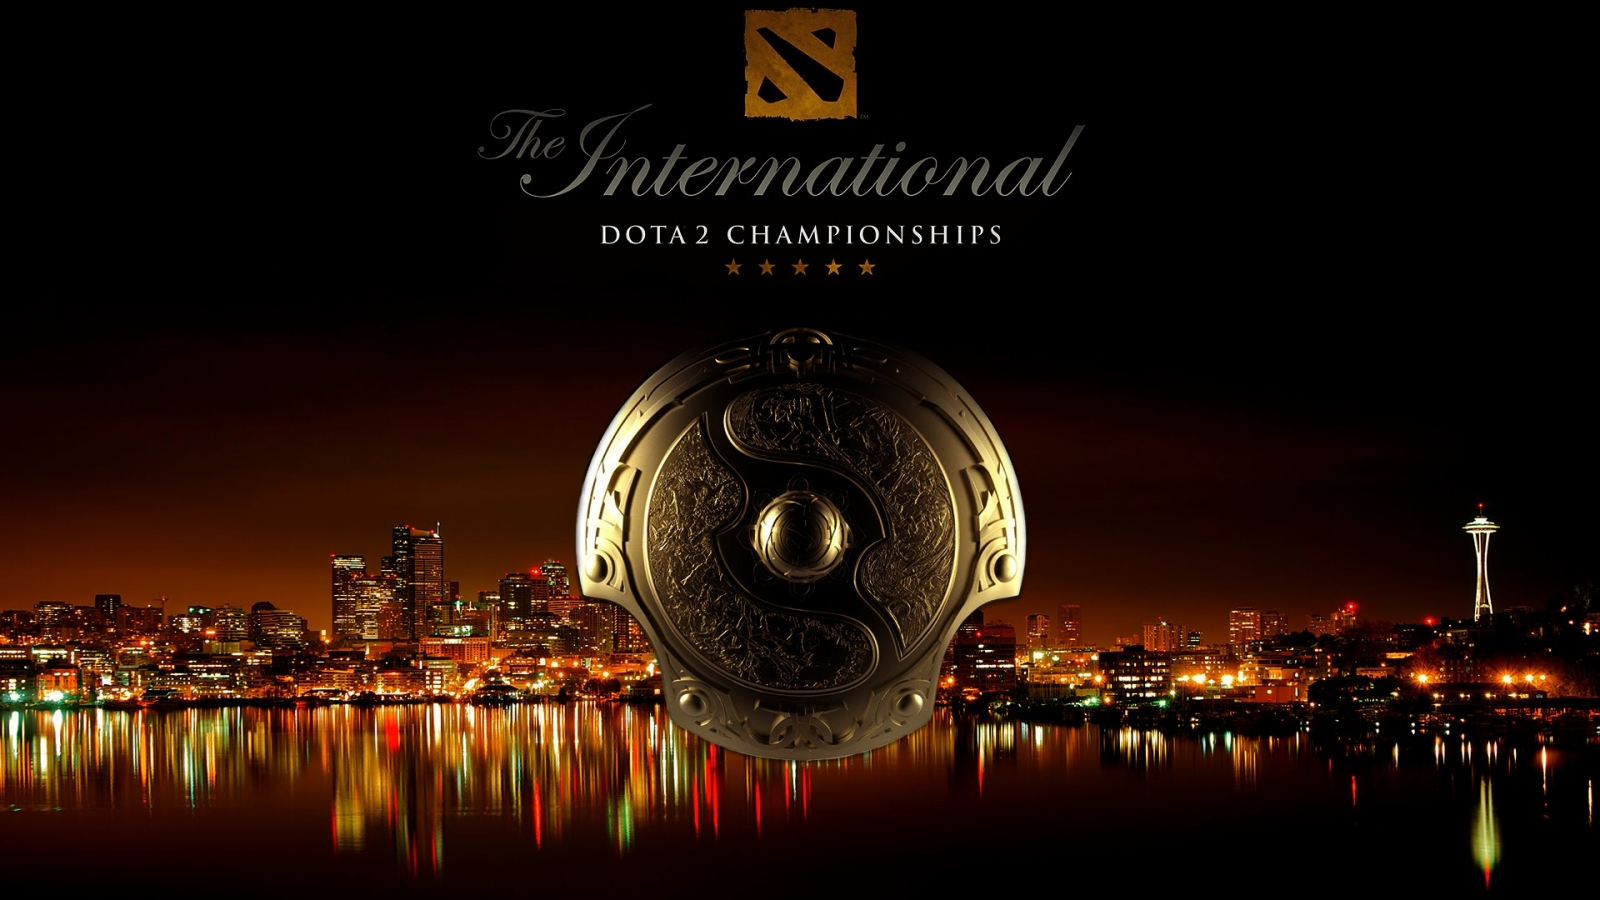 The International Dota 2 Championships 2015 How To Watch Online Match Schedule Team Odds And